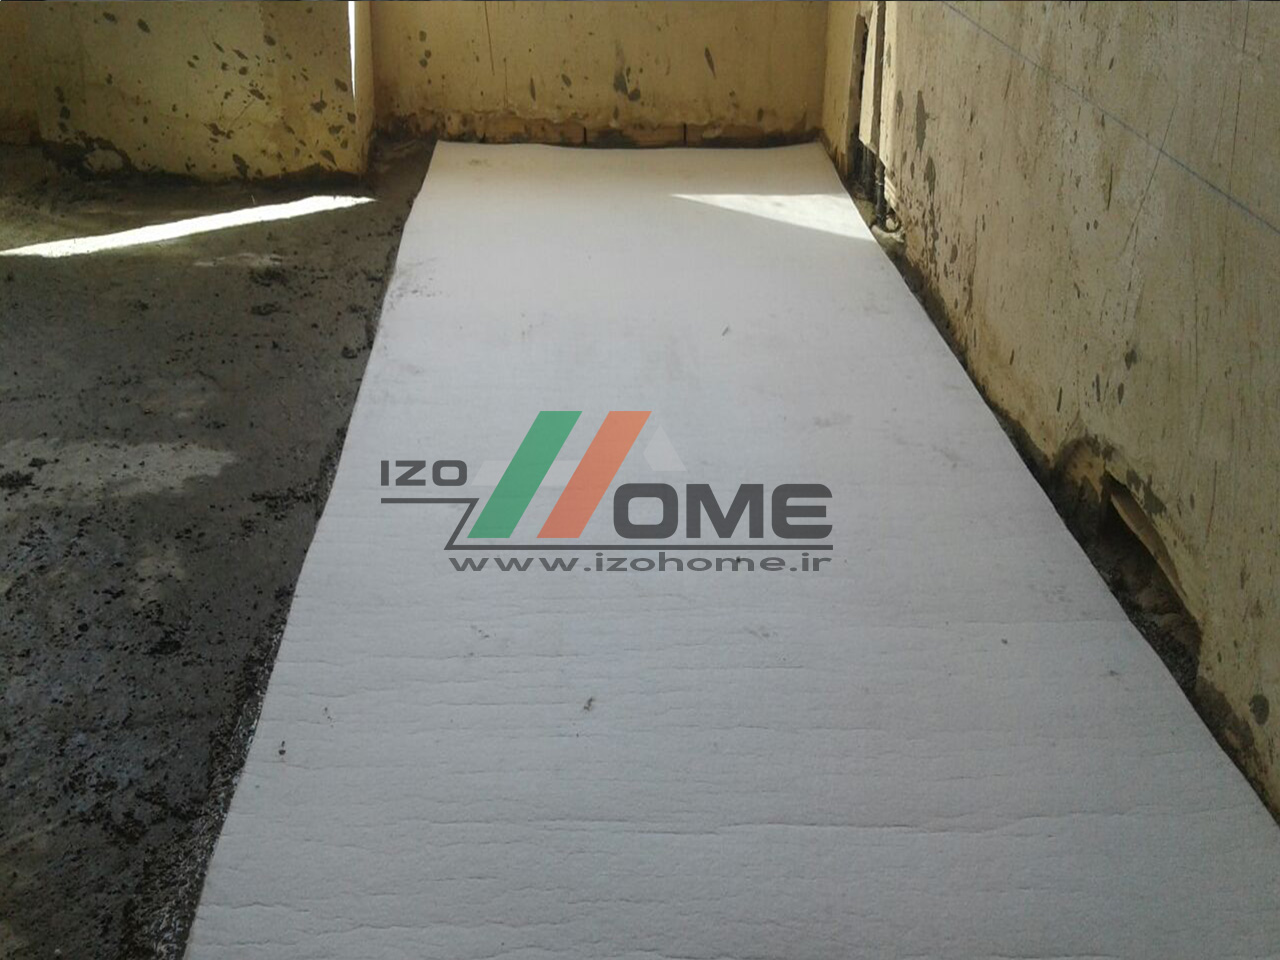 izohome48 - Sound insulation for the floor